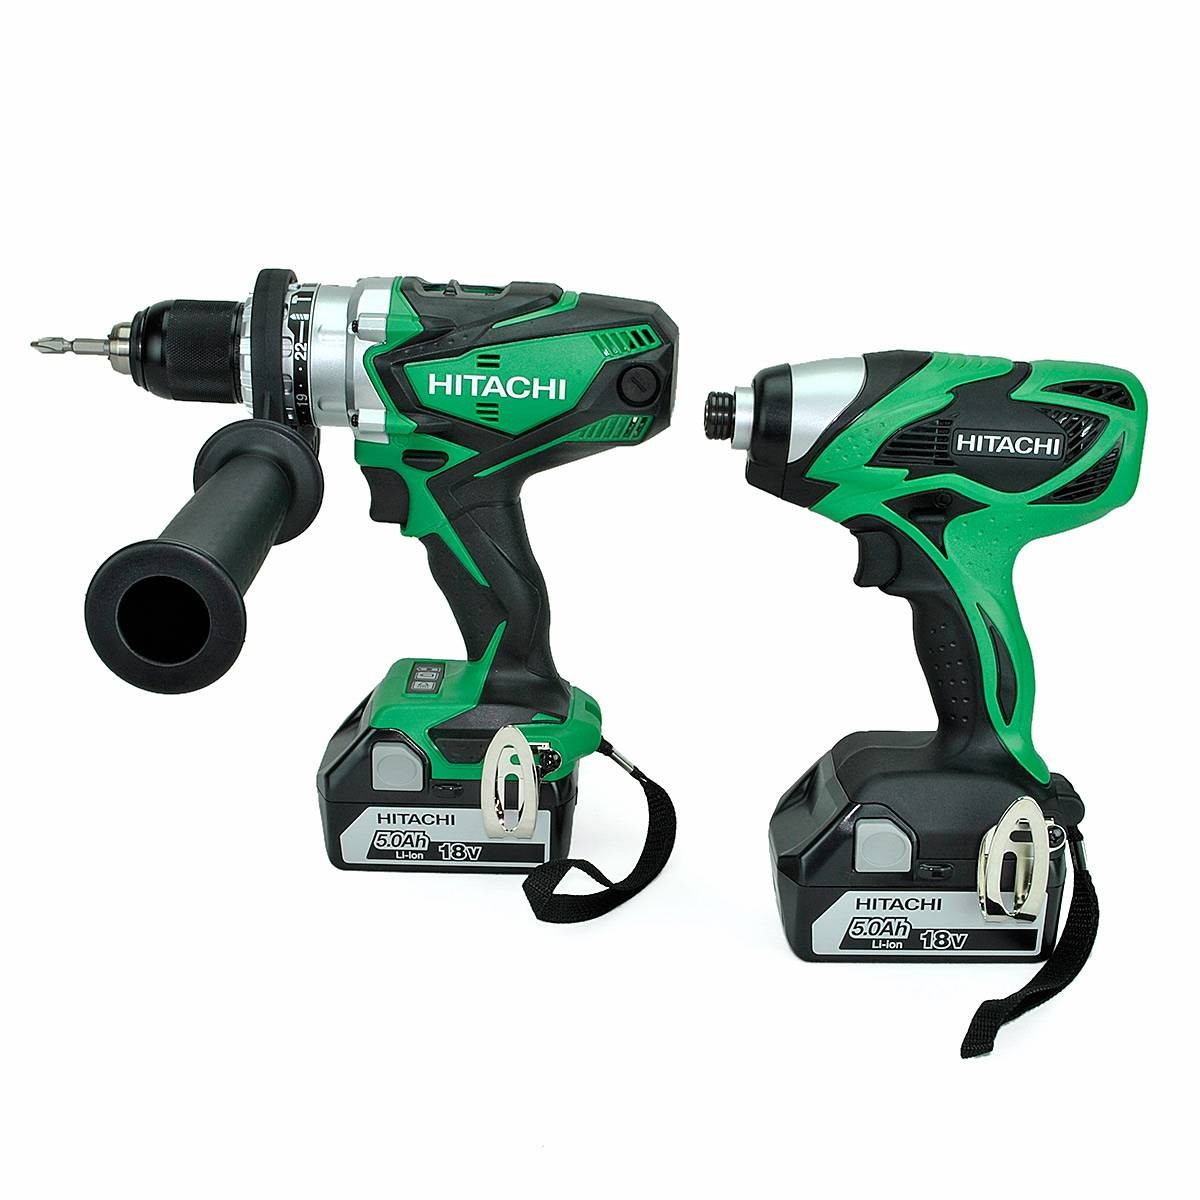 hitachi battery drill. hitachi kc18dkl 18v combi drill \u0026 impact driver kit 2x5ah batts | powertool world battery